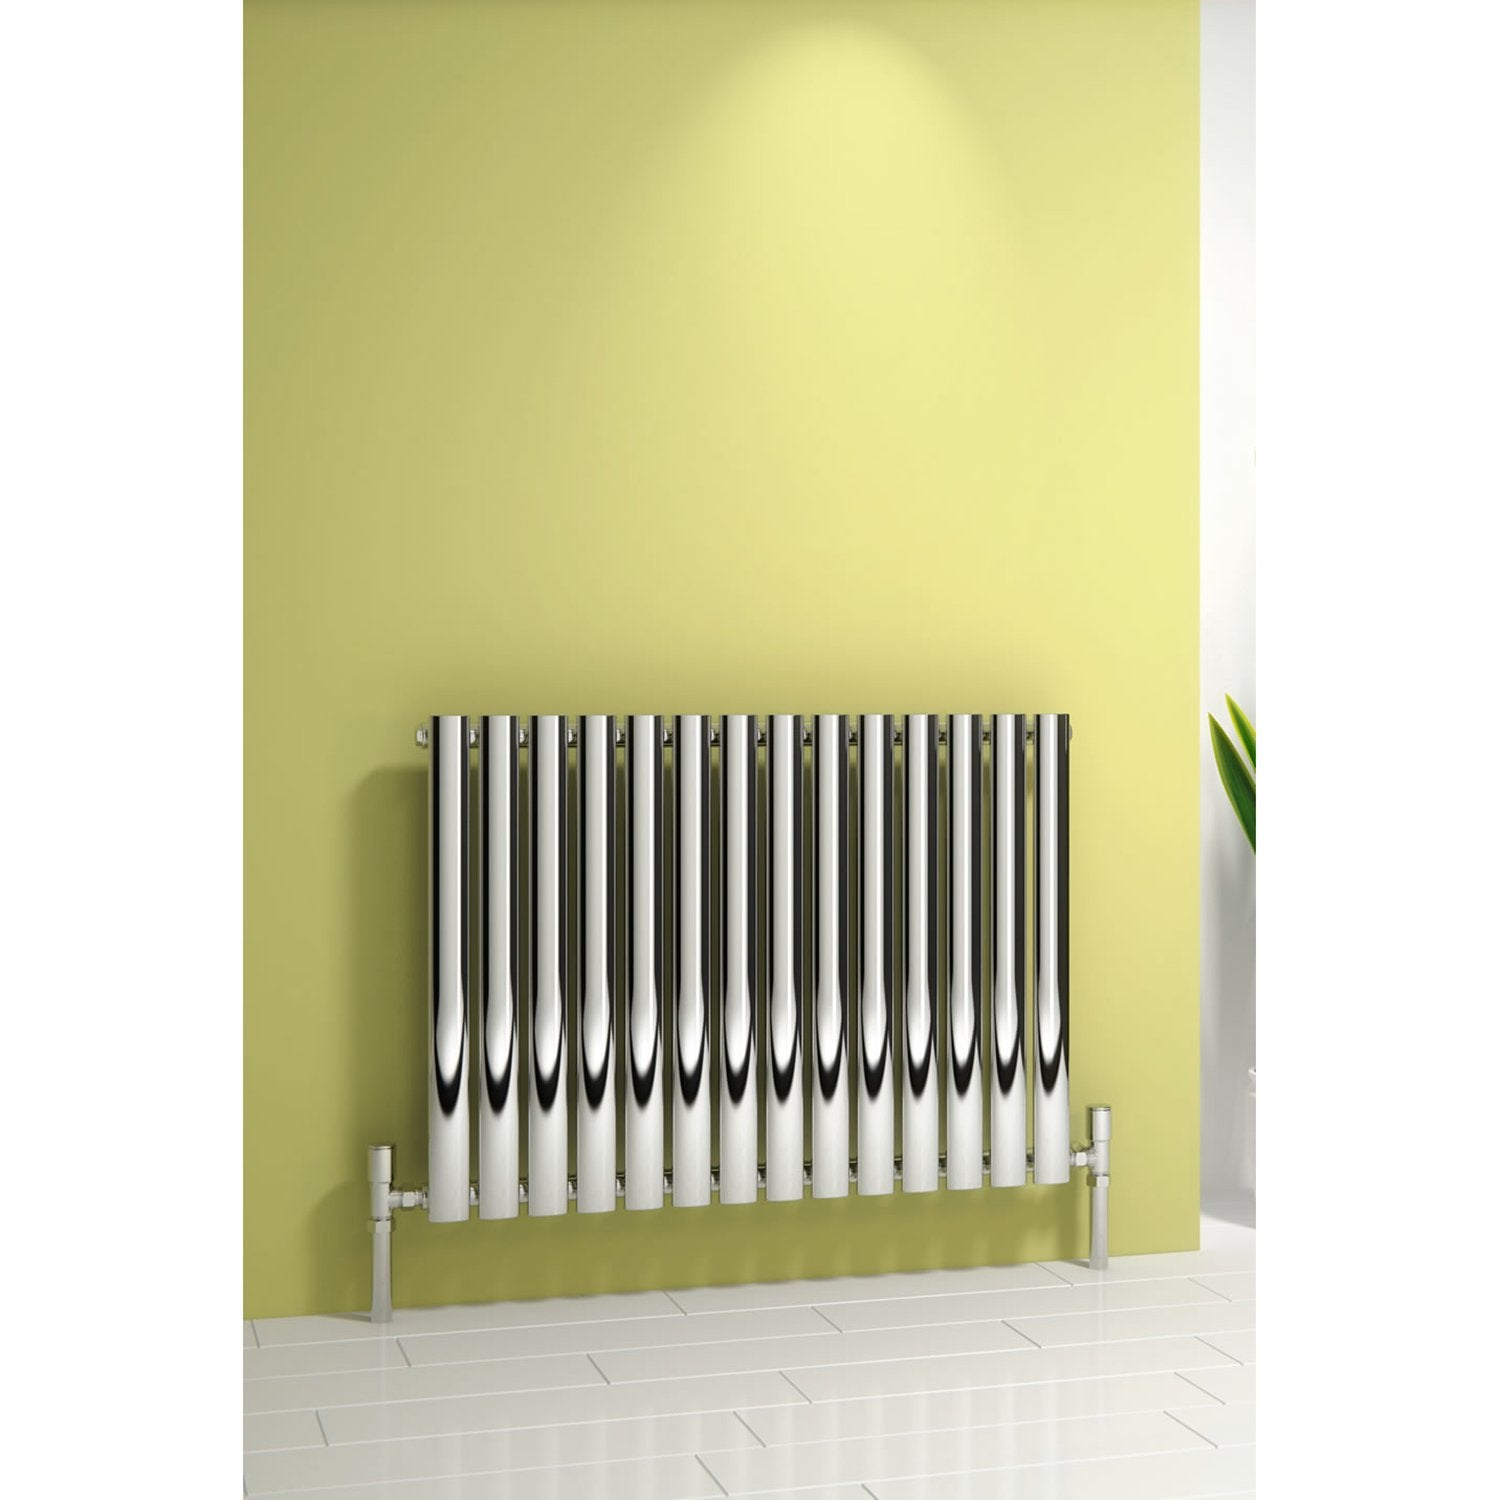 Reina Designer Nerox Horizontal Heated Towel Rail Stainless Steel Radiator